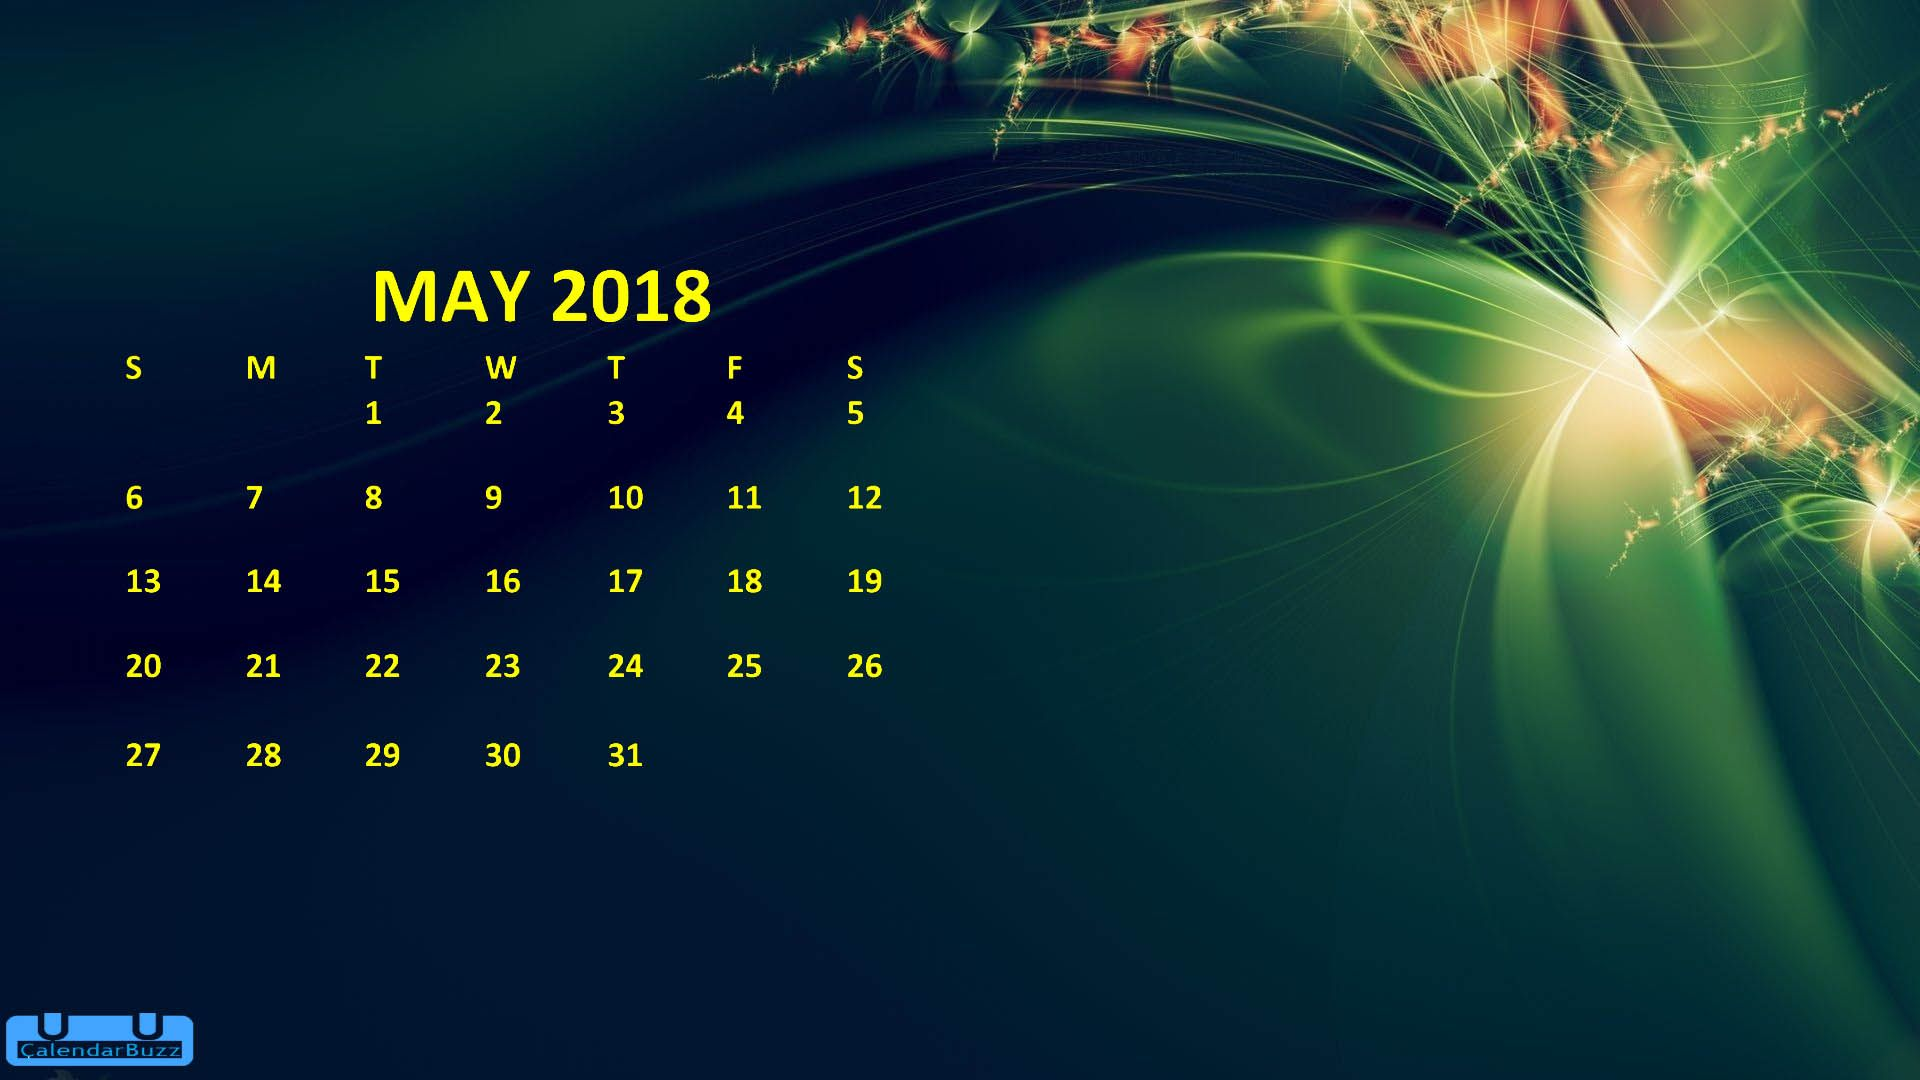 May 2018 Calendar HD Wallpaper